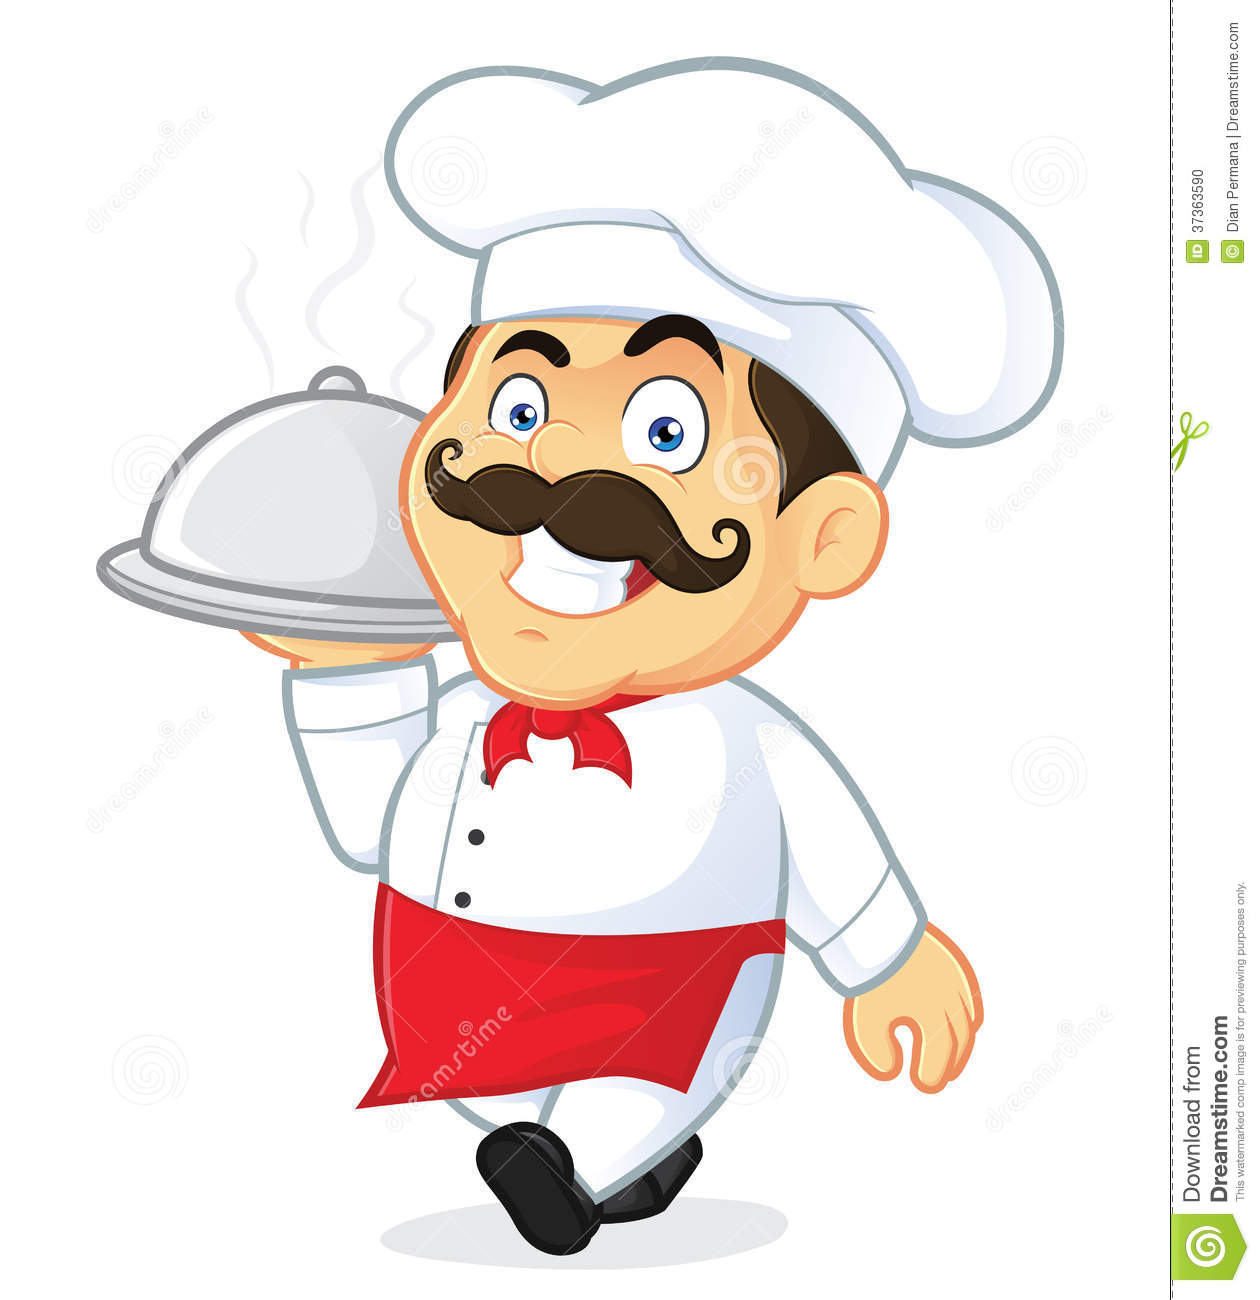 Man clipart chef #4